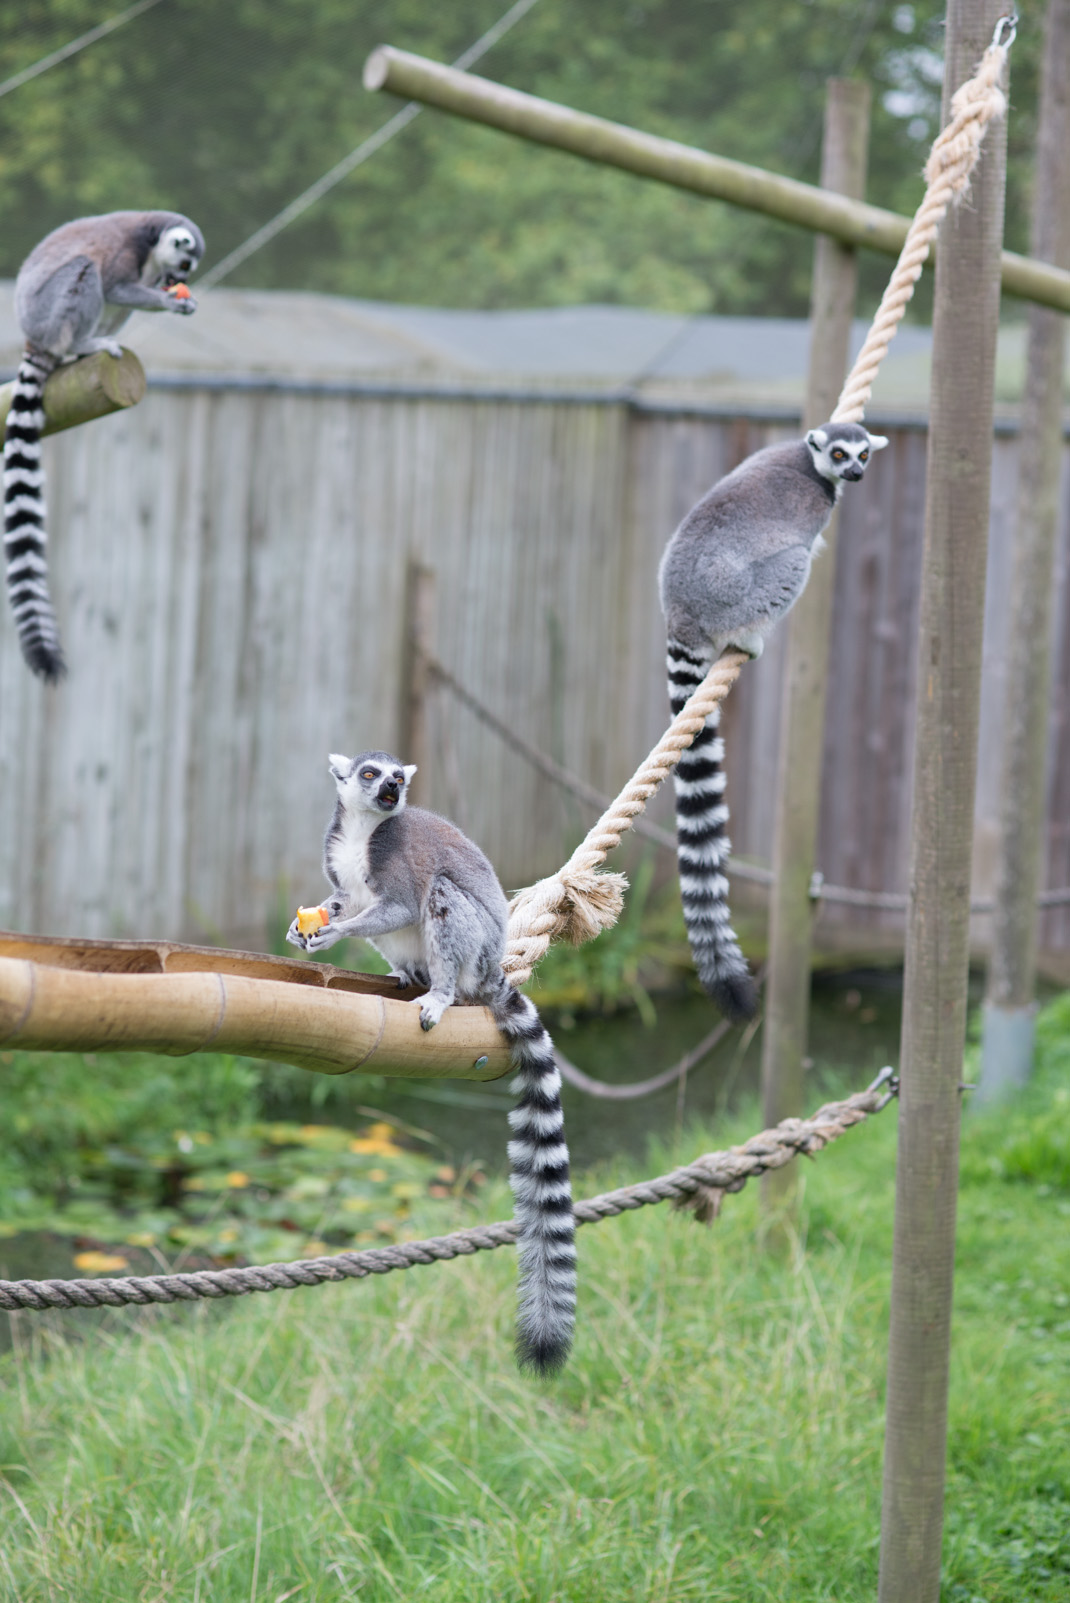 lemur, Madagascar, Marwell Zoo, stripey, cute, animals